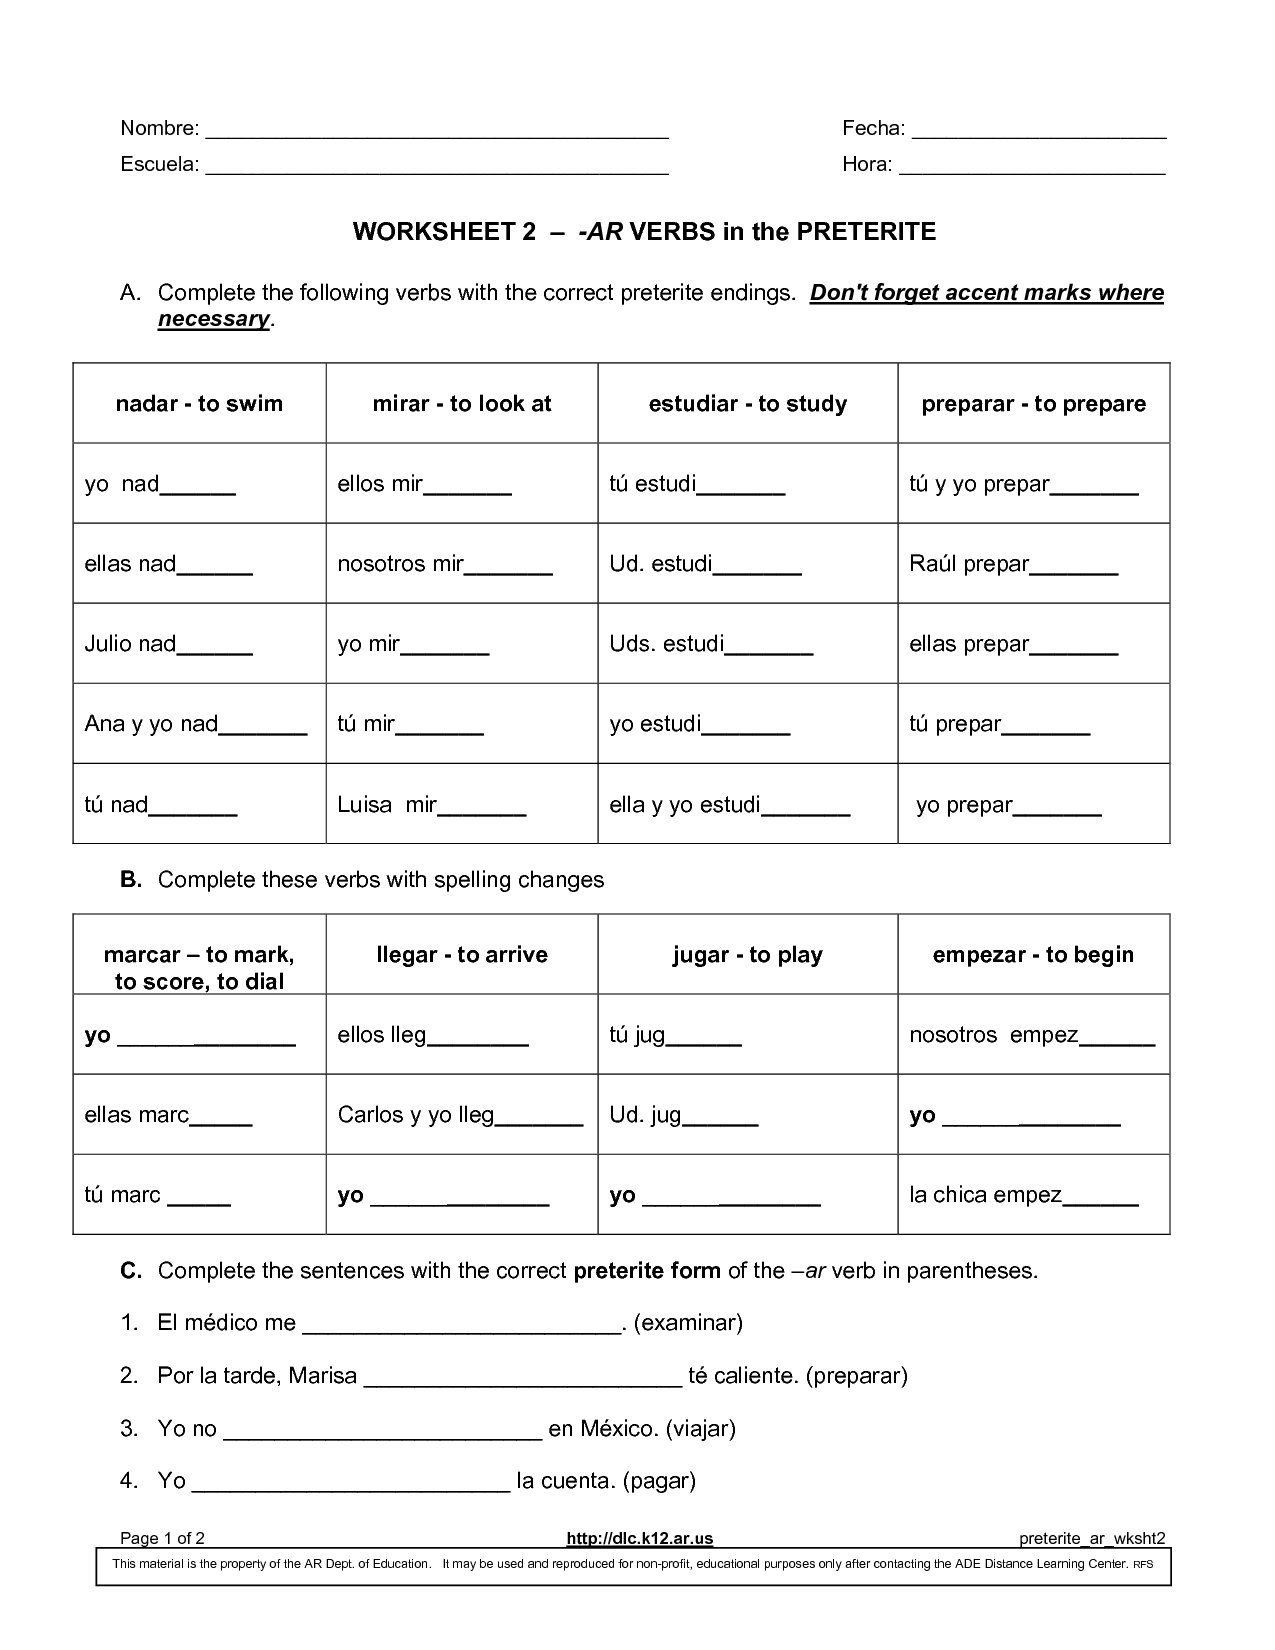 17 Best Images Of Spanish Irregular Verbs Printable Worksheets